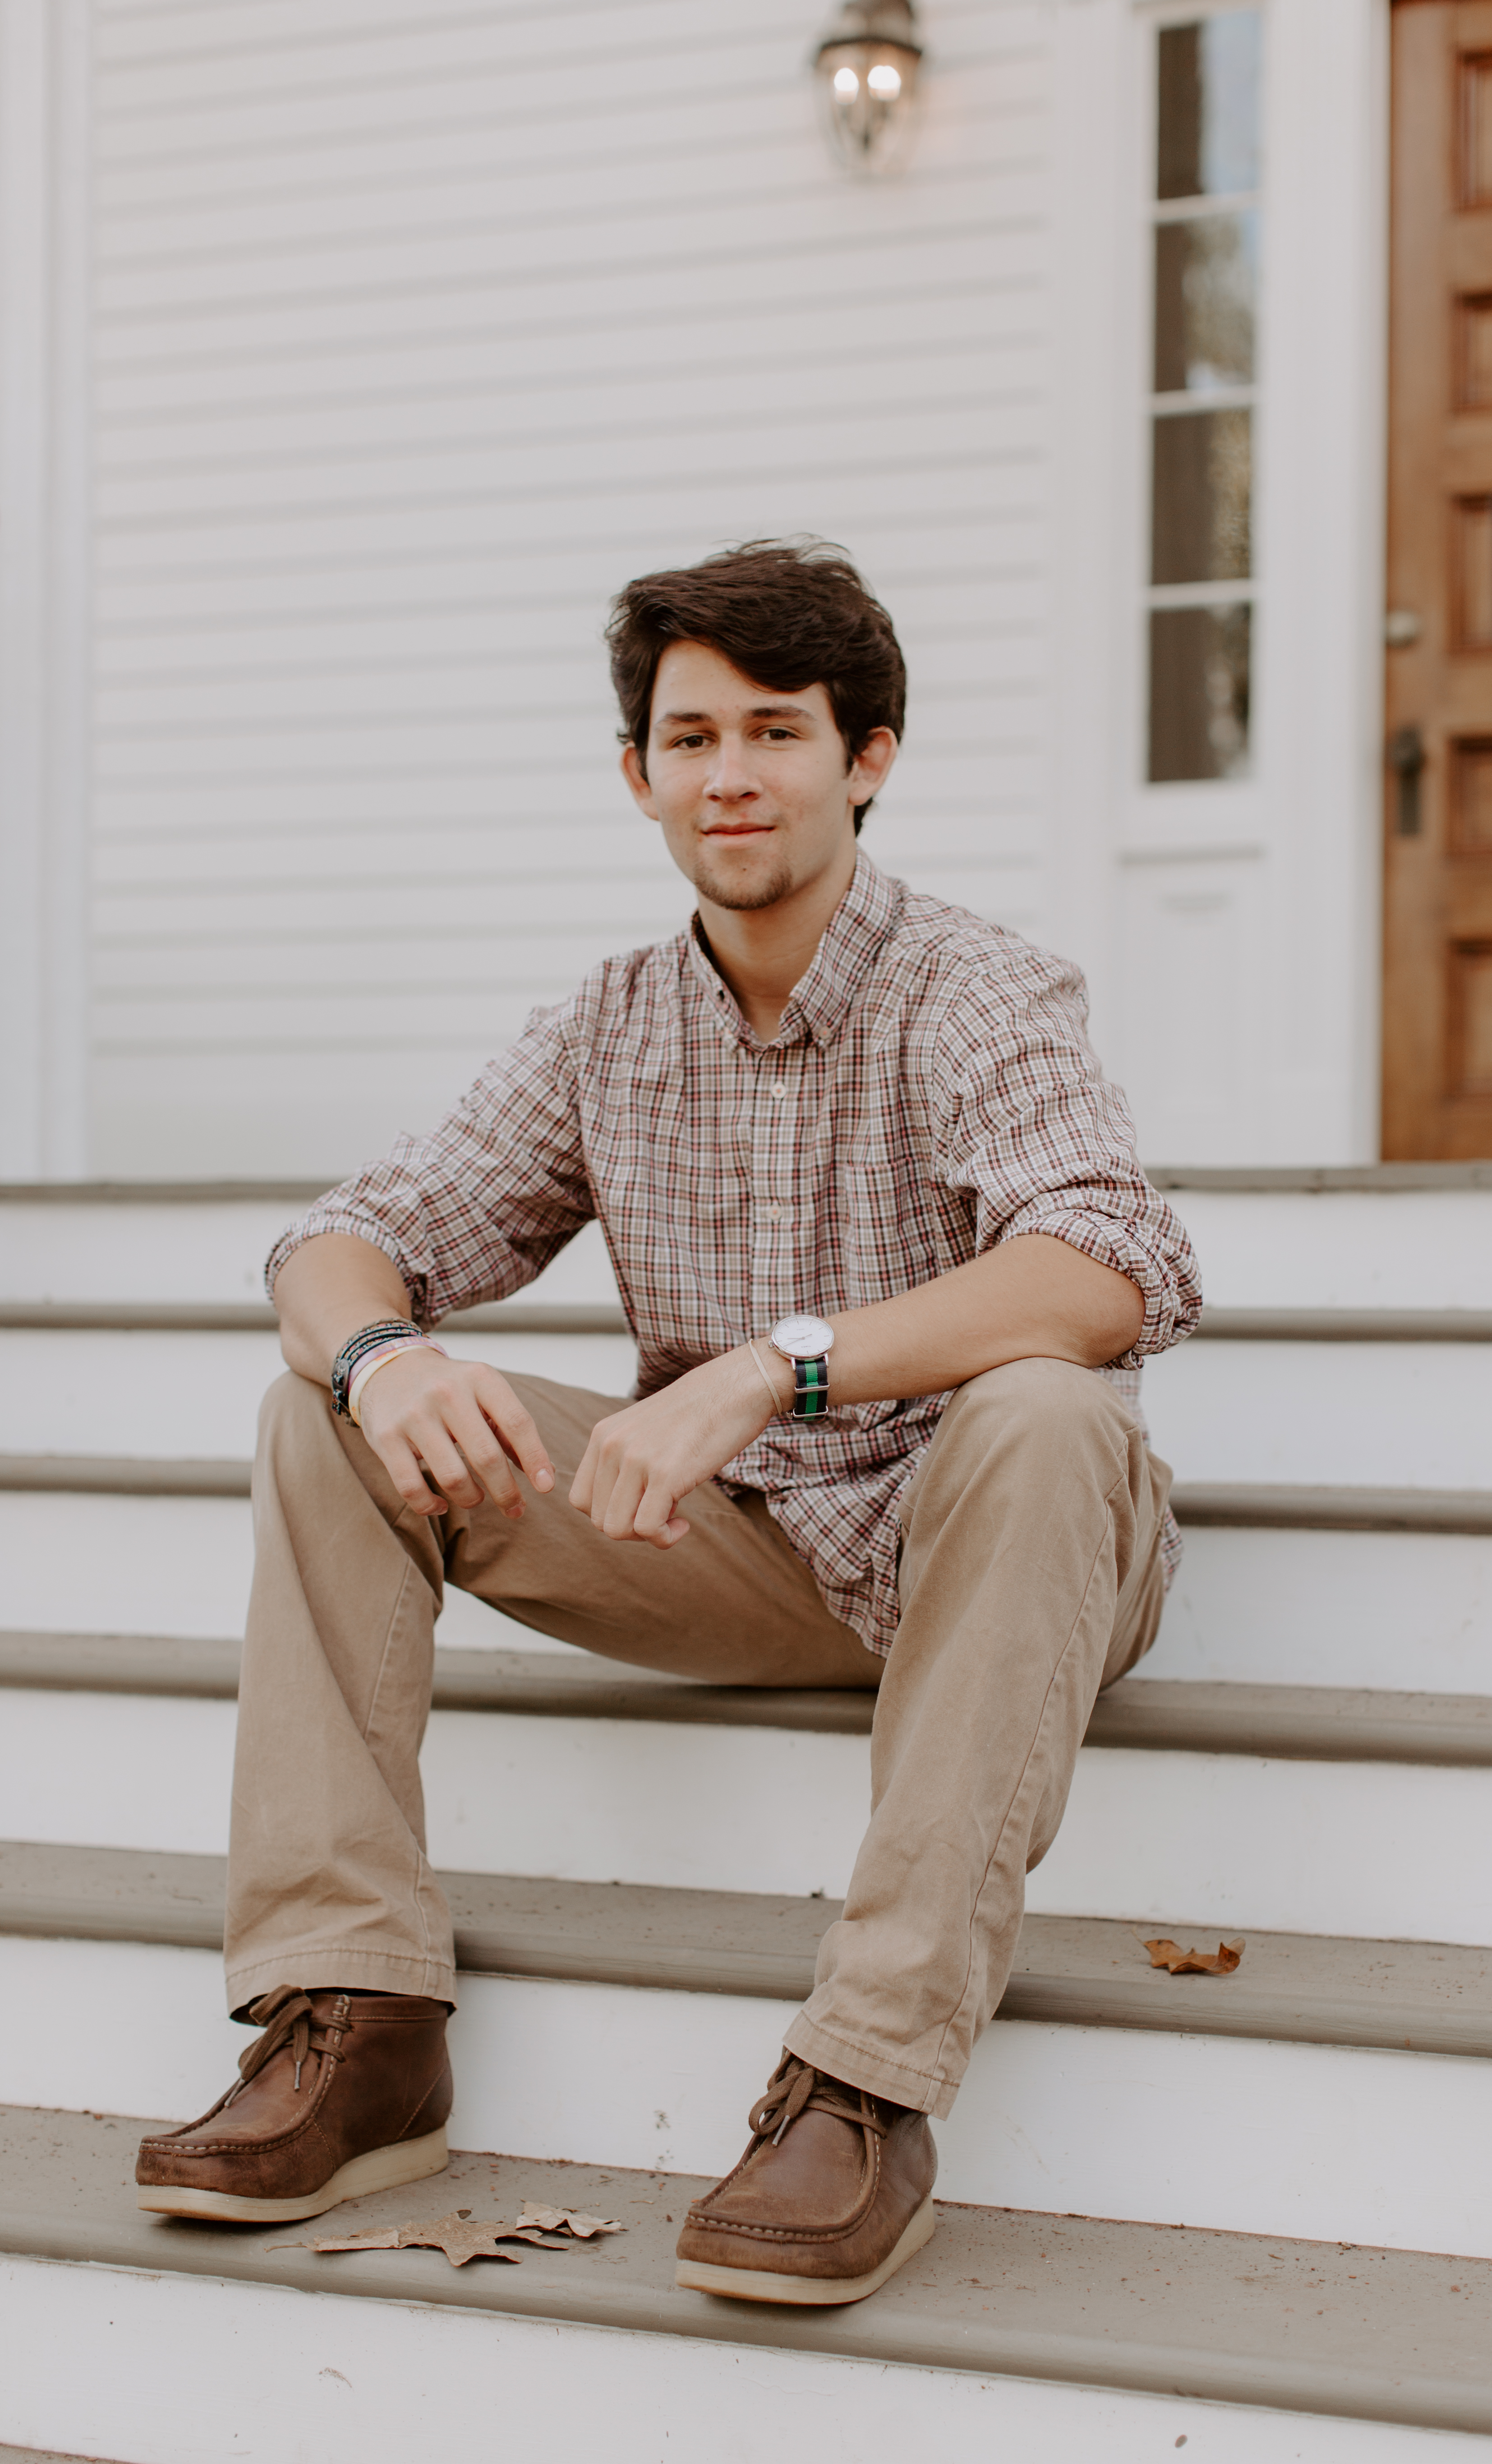 Christian O. Senior pictures collared shirt button up stairs poses pictures baseball senior wooden door